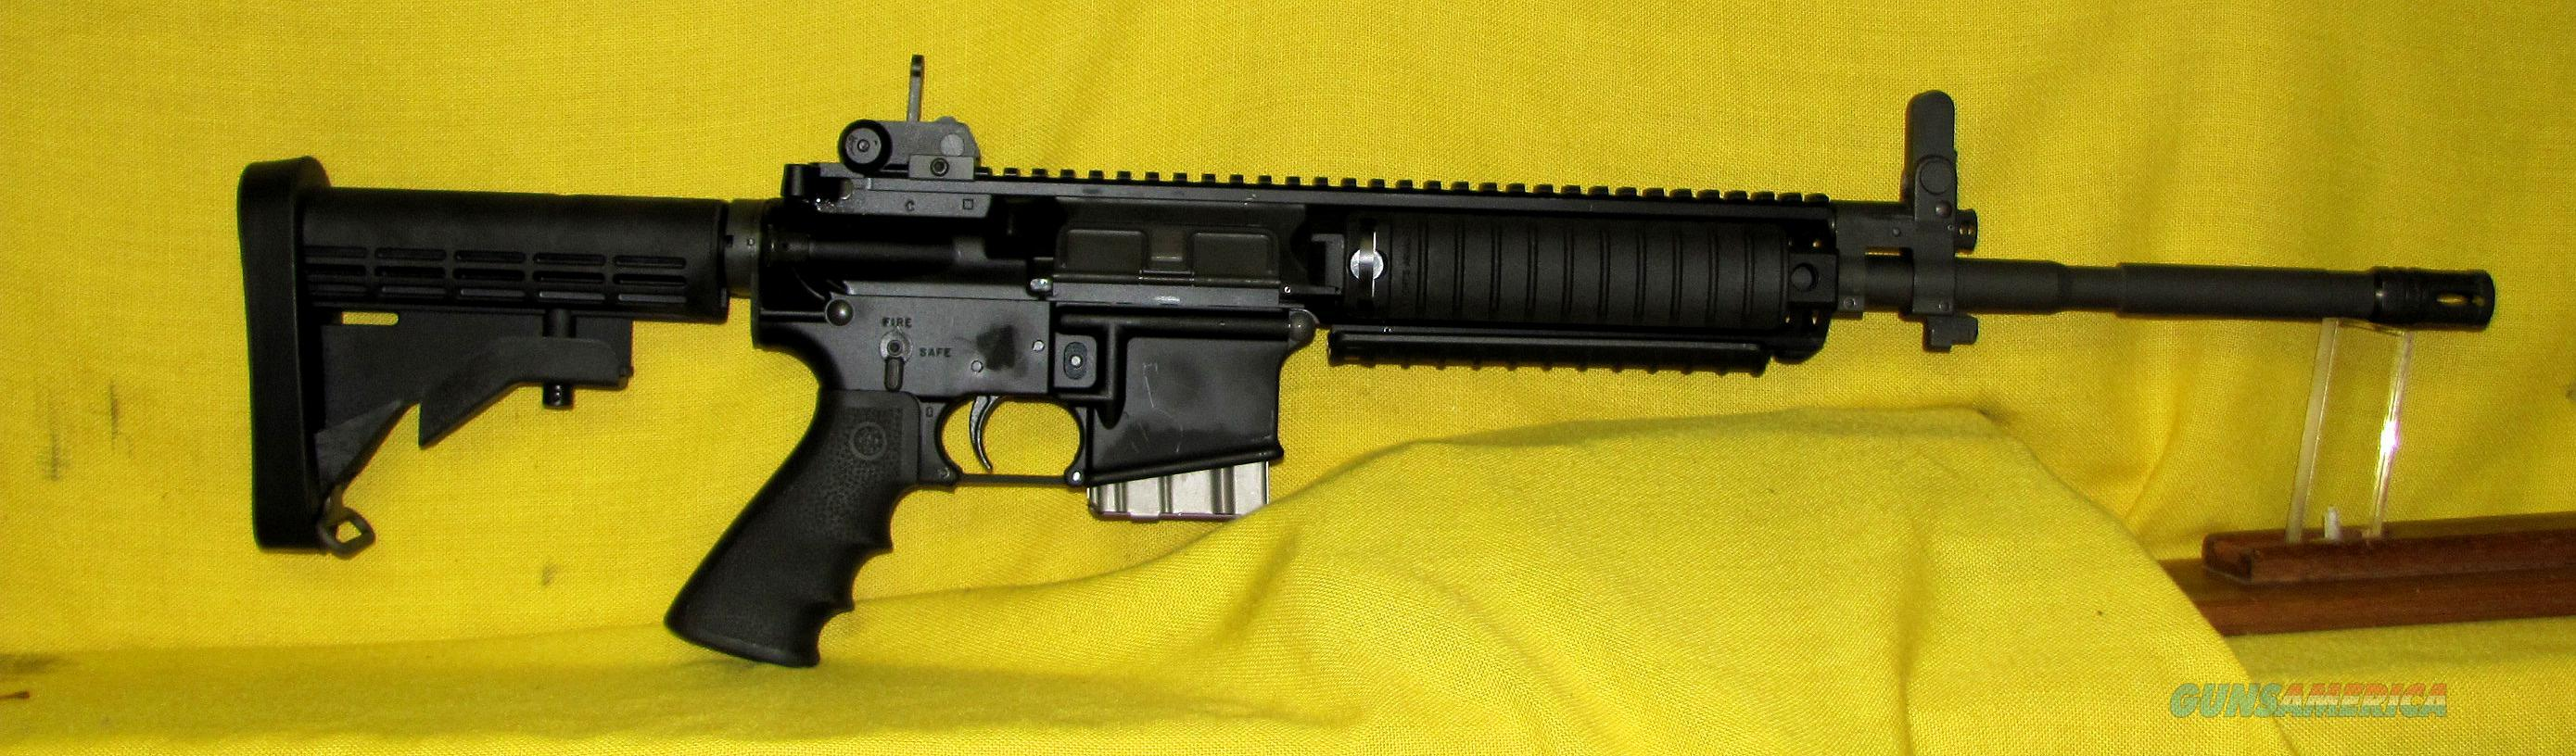 COLT GAS OPERATED LE M4 CARBINE  Guns > Rifles > Colt Military/Tactical Rifles